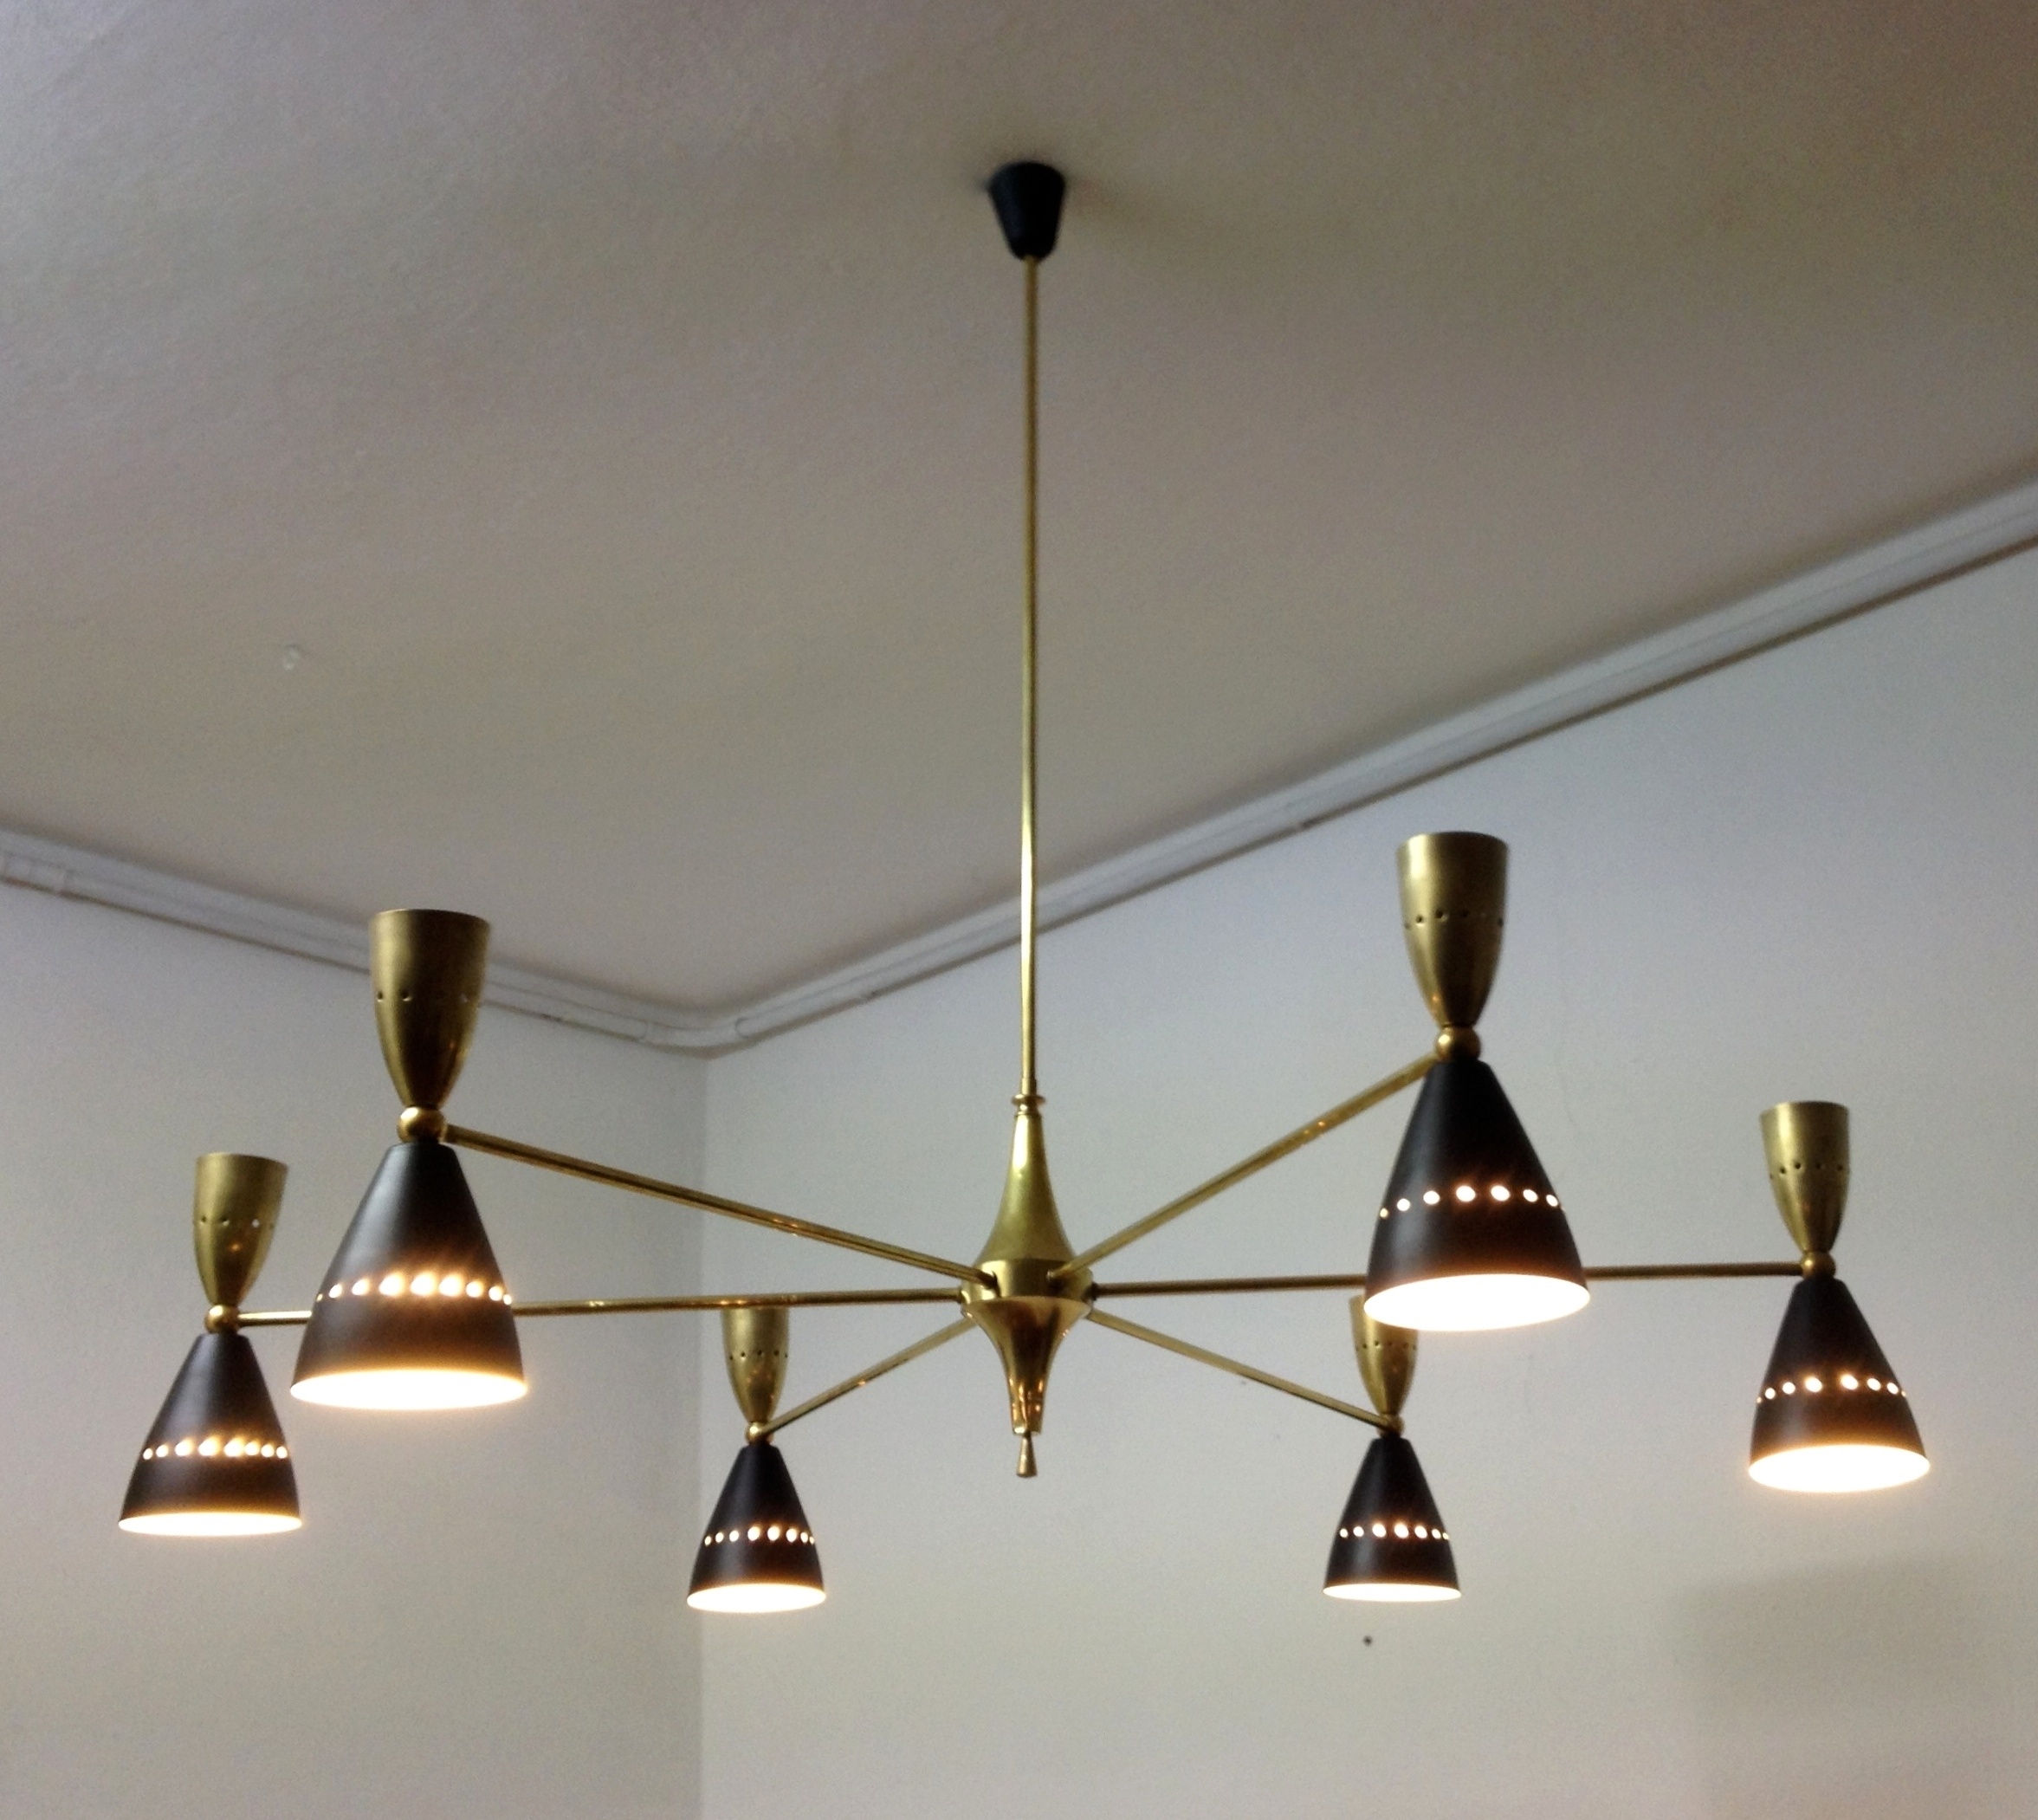 Stylish Large And Authentic Double Coned Italian Mid Century Throughout Most Recently Released Contemporary Black Chandelier (View 7 of 20)